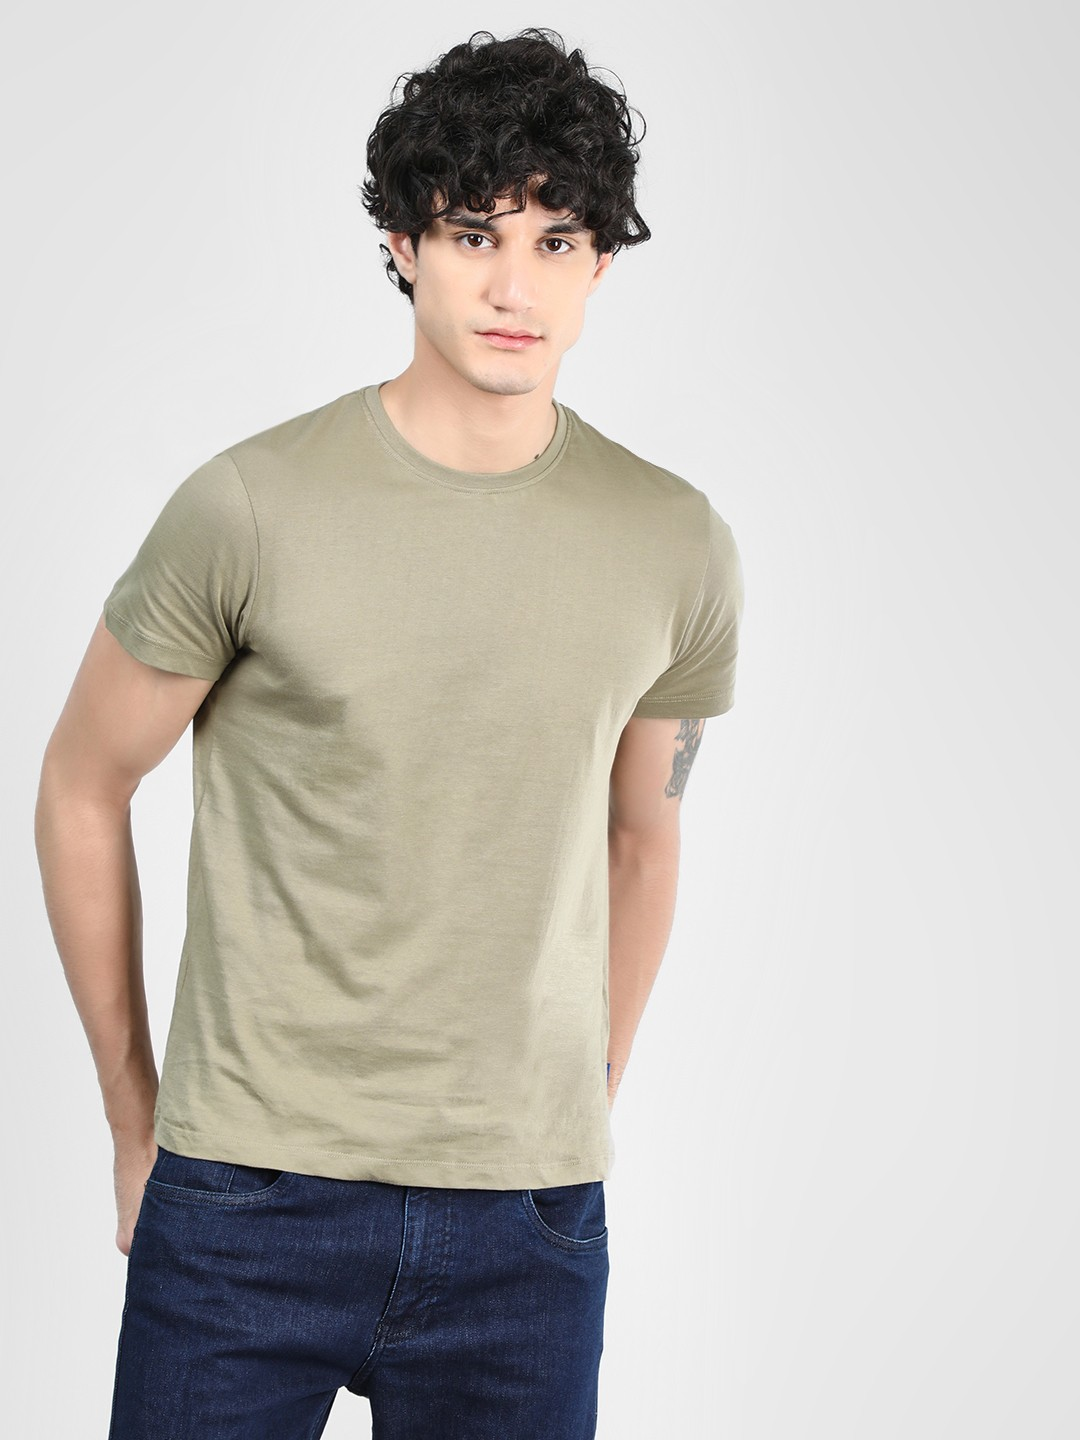 Blue Saint Green Basic Short Sleeve T-Shirt 1